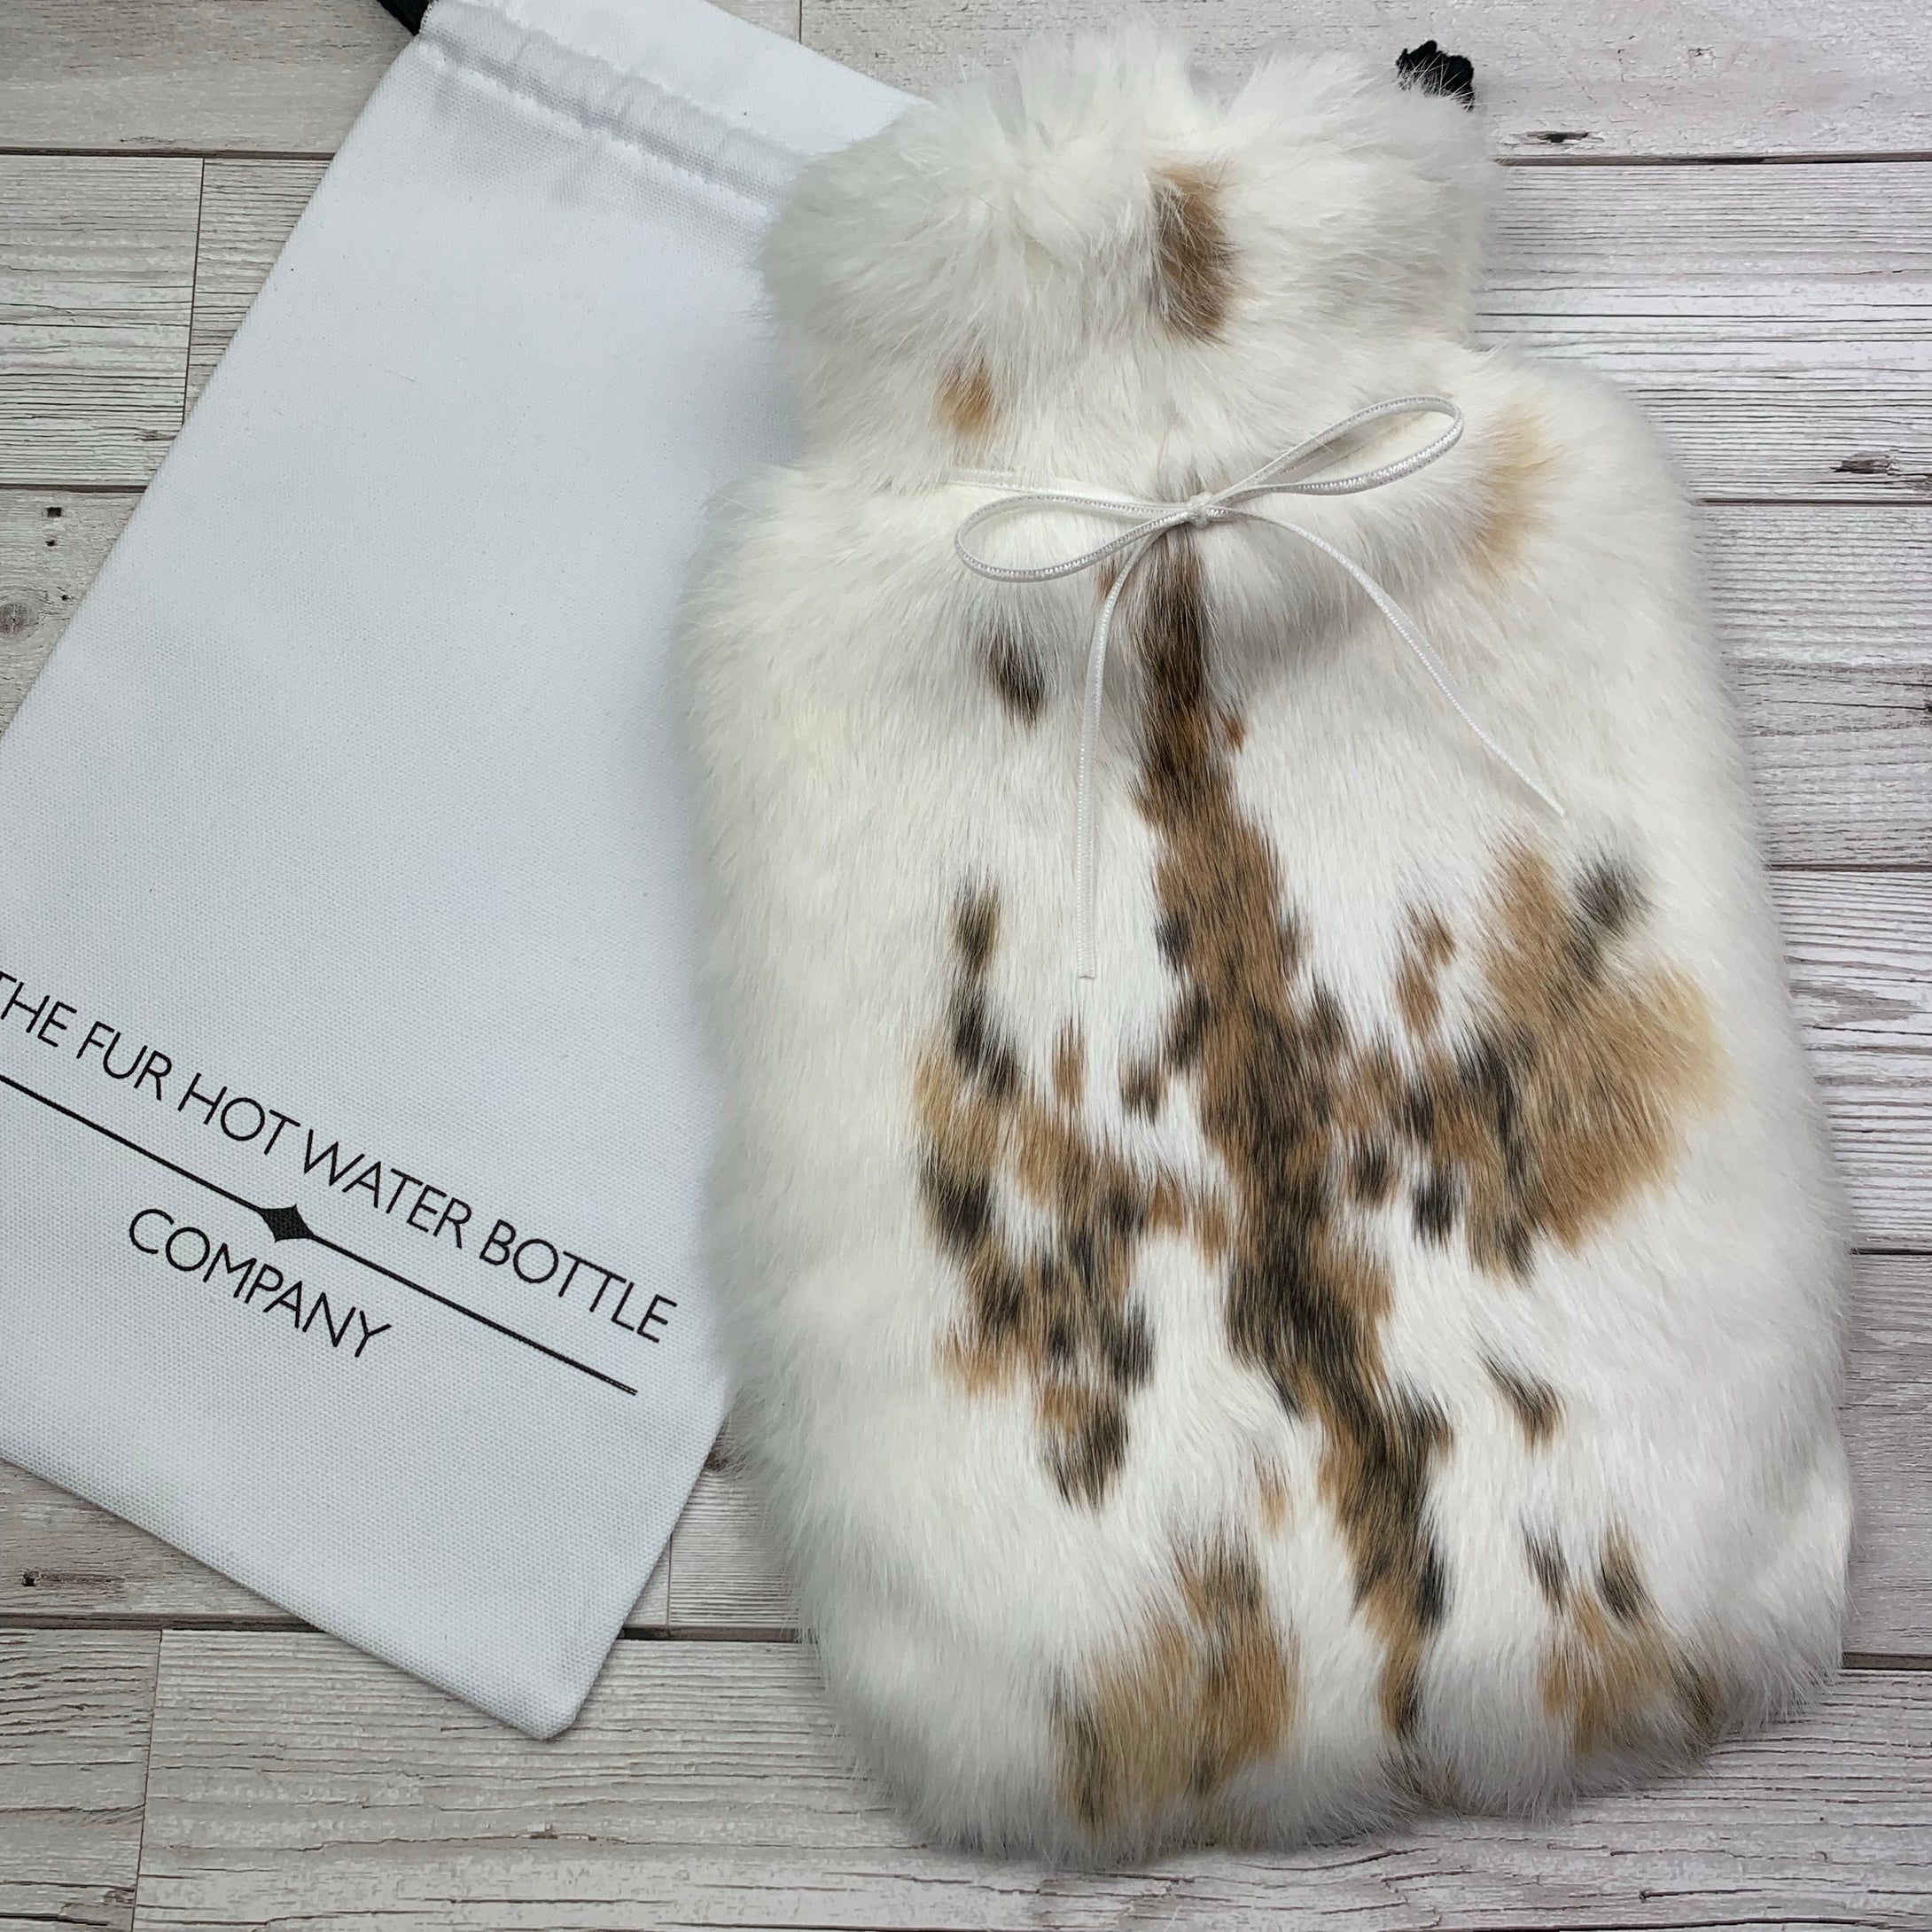 Luxury Rabbit Fur Hot Water Bottle - Large - #236/1 - Premium